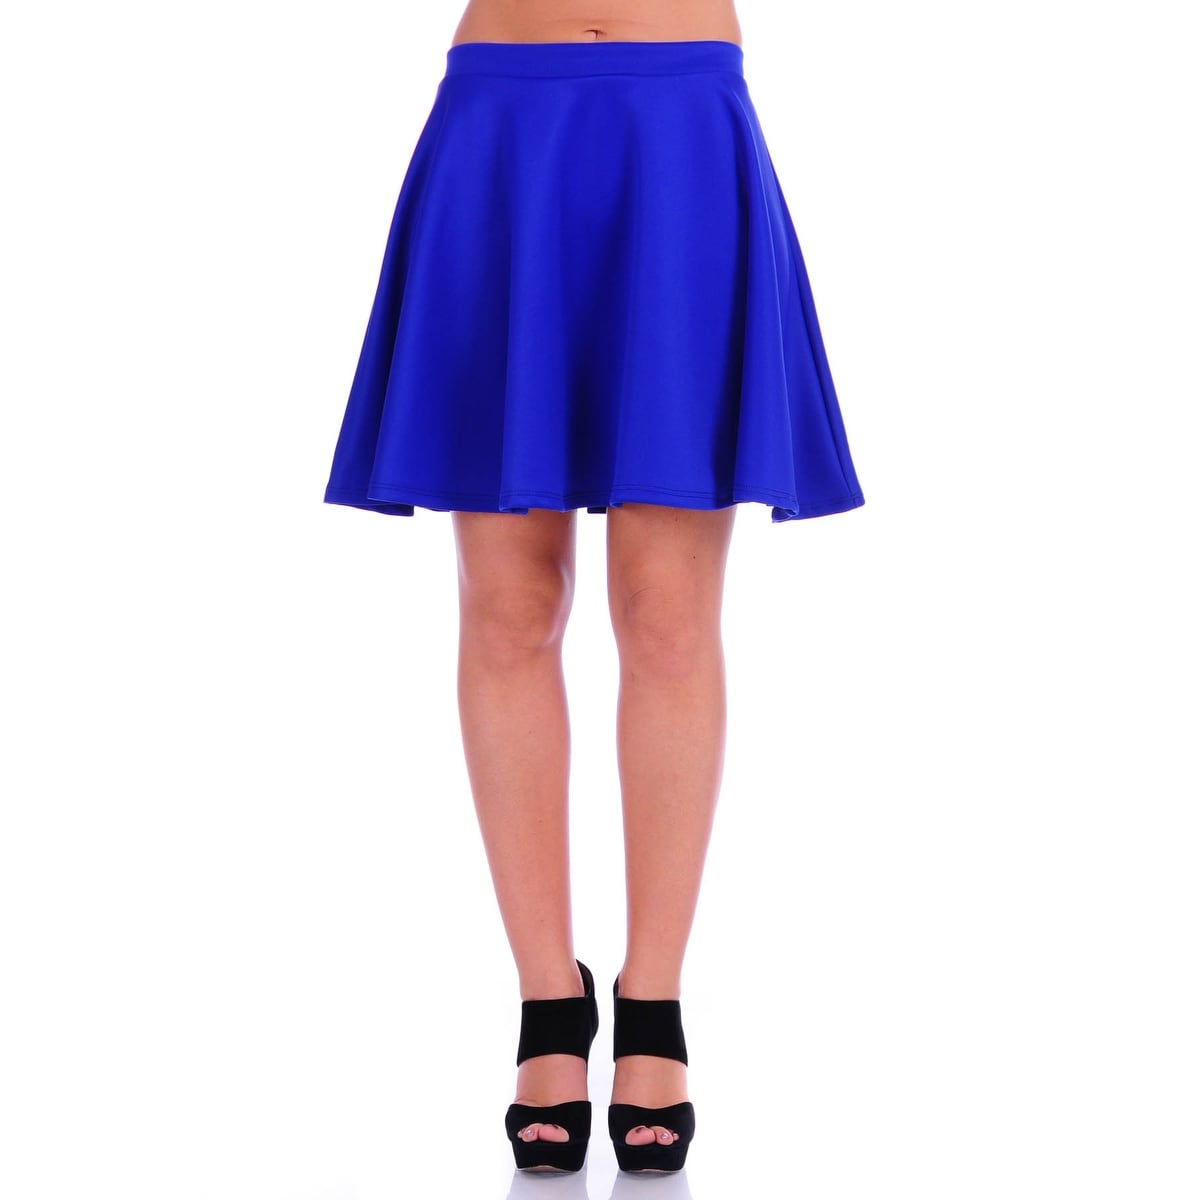 ce5911c2874c6c Shop Simply Ravishing Women's Basic Stretch Flared Skater Mini Skirt - Free  Shipping On Orders Over $45 - Overstock - 11807341